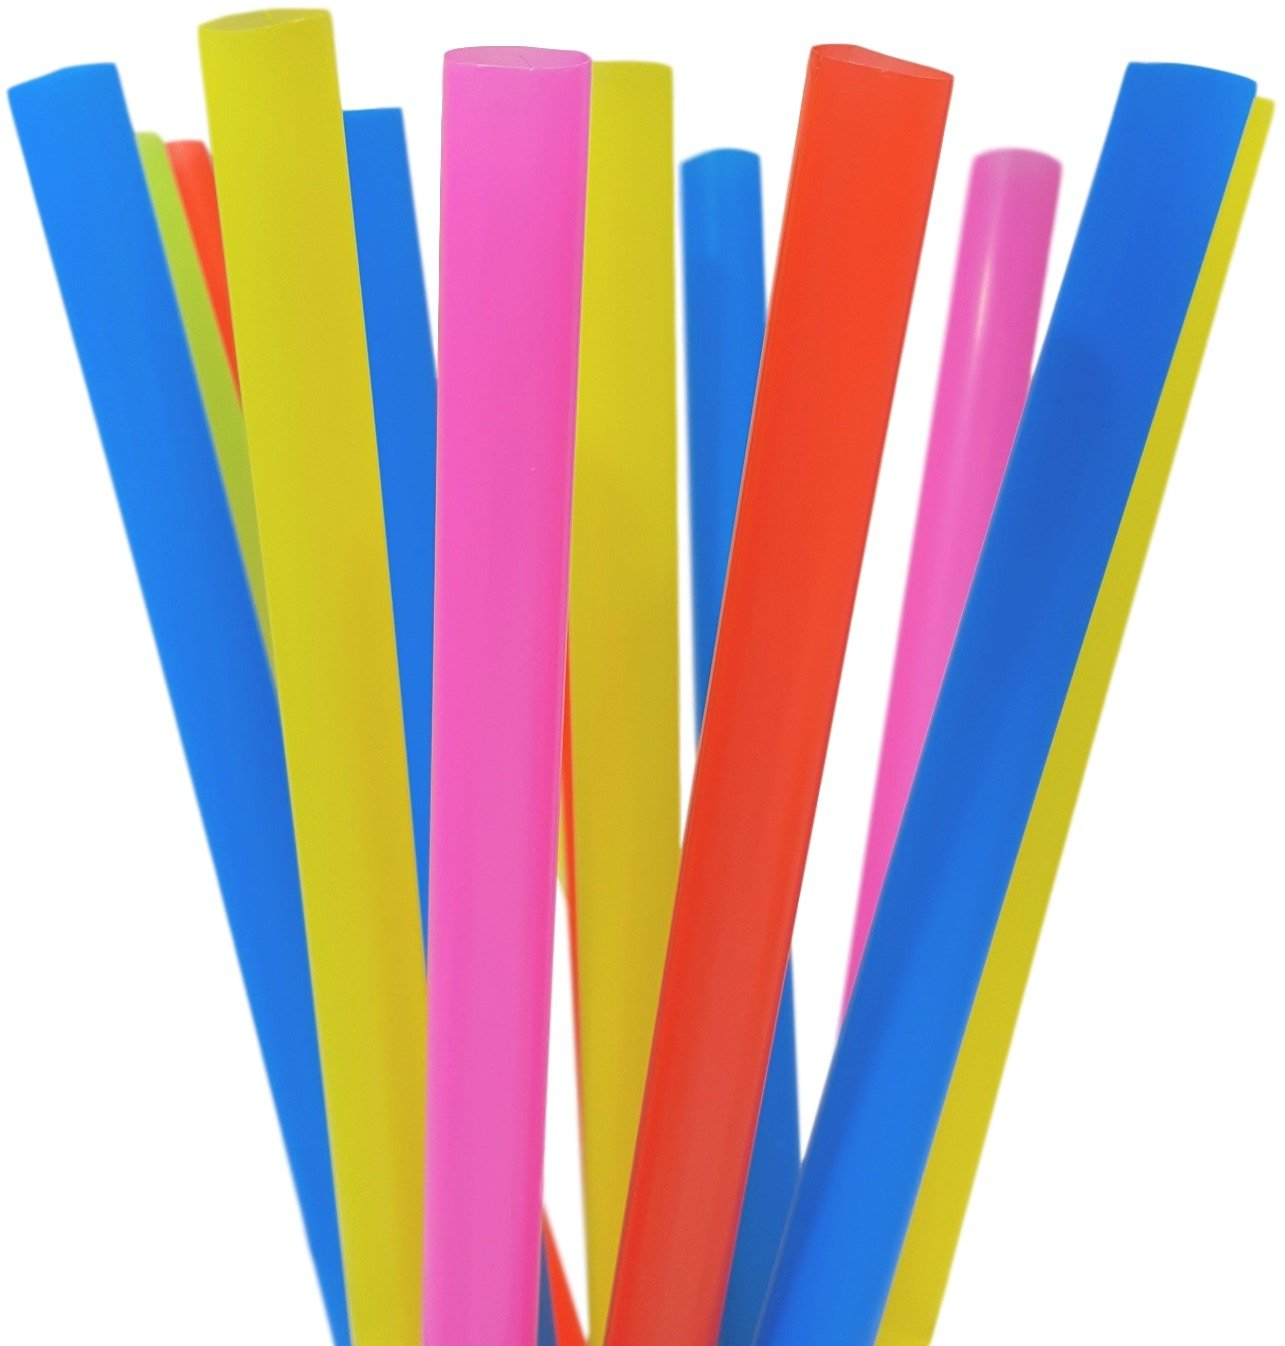 EXTRA LARGE Milkshake Straws 1/2 Inch Wide 8 1/2 Inch Long (500) by Rupert & Jeoffrey's Trading Co.